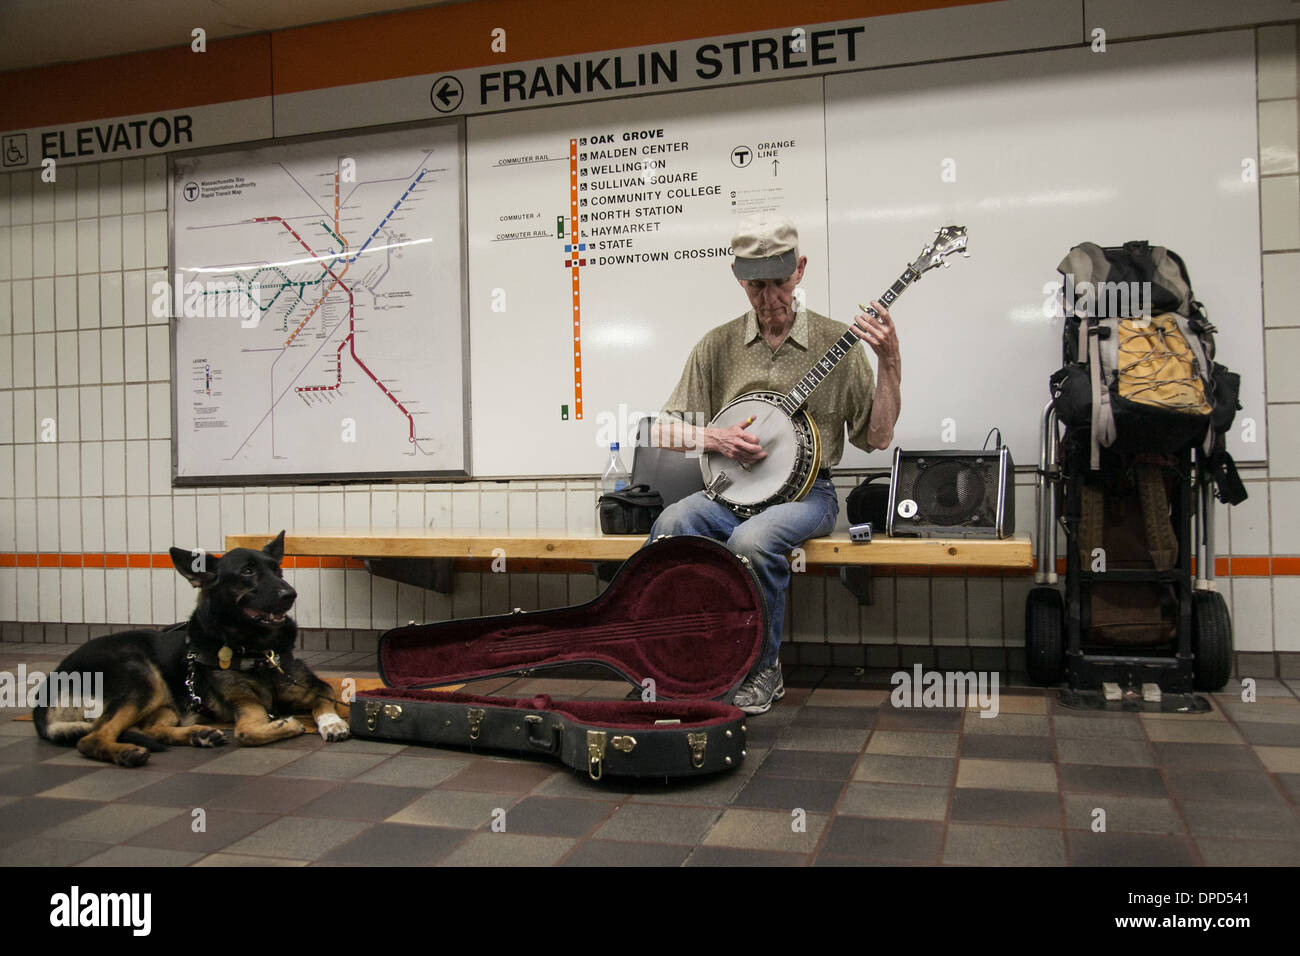 A street performer plays the banjo on the subway accompanied by his dog - Stock Image